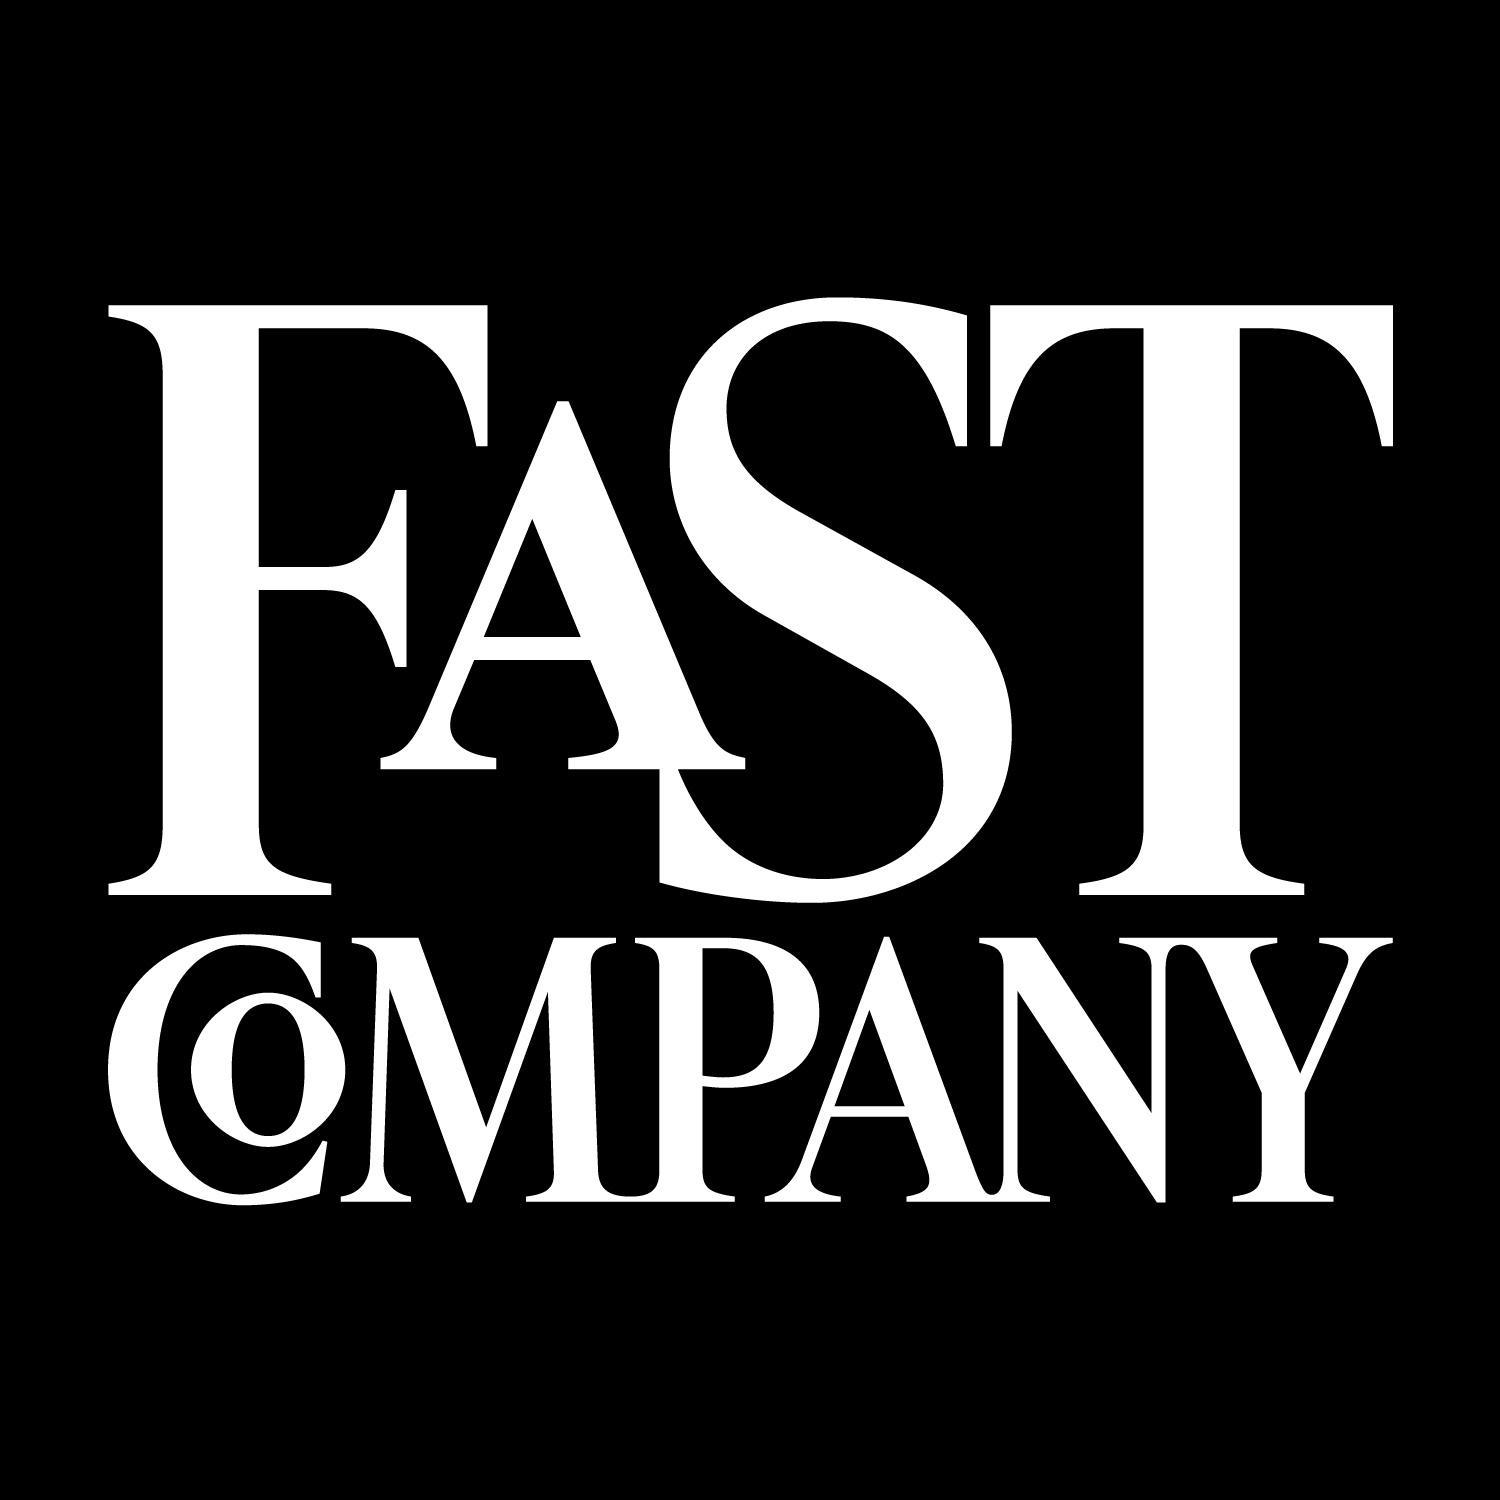 fast-company-logo-png-6.png